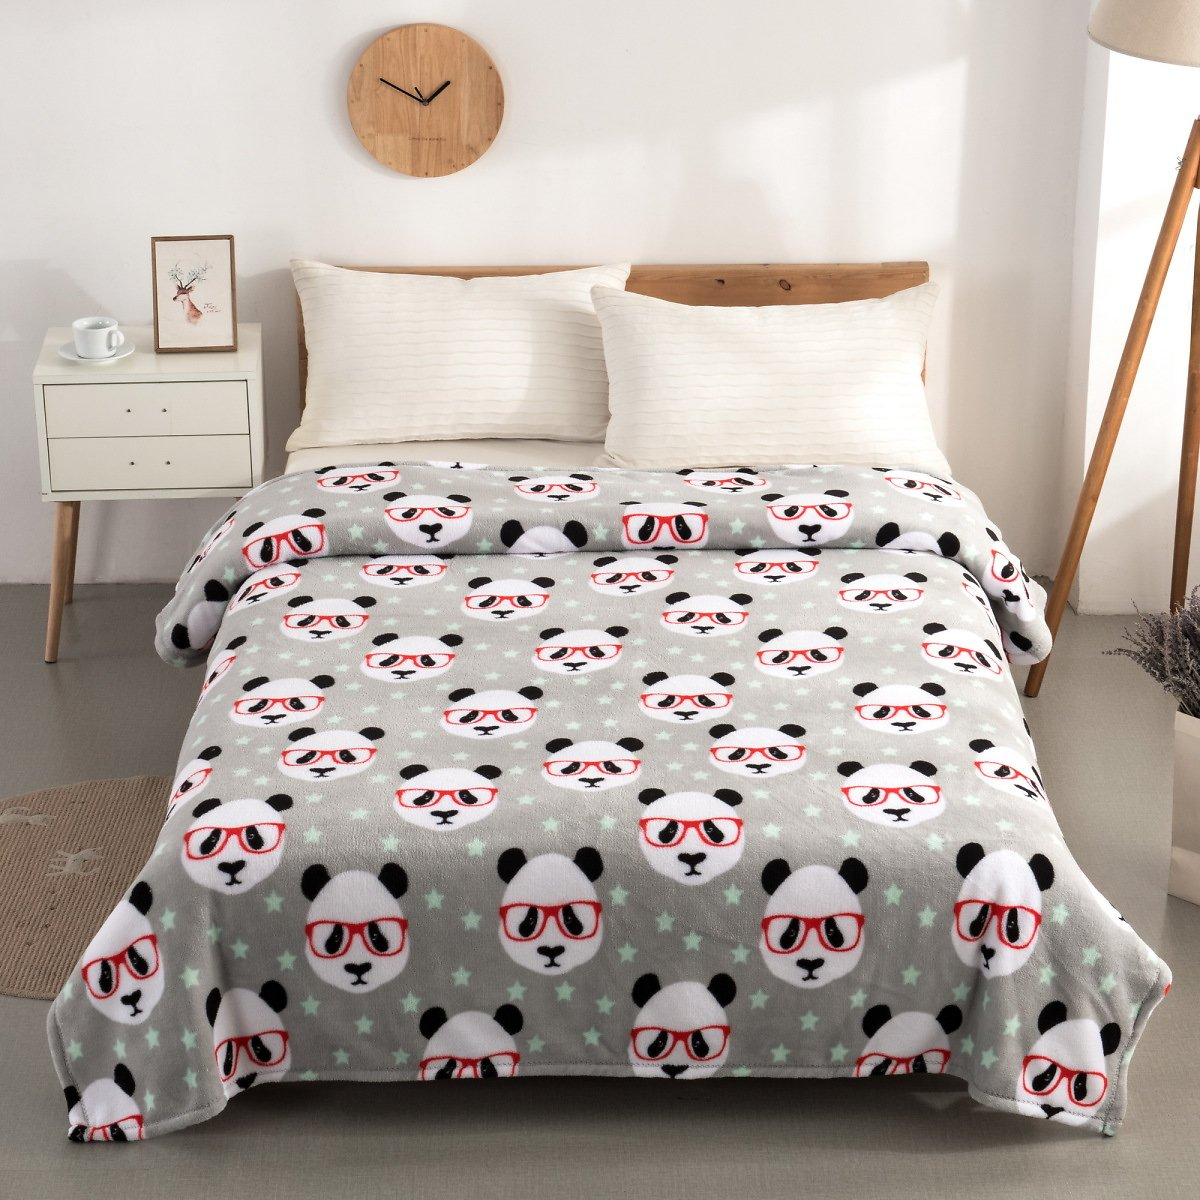 Plush Twin Panda Bed Blanket By Mainstays